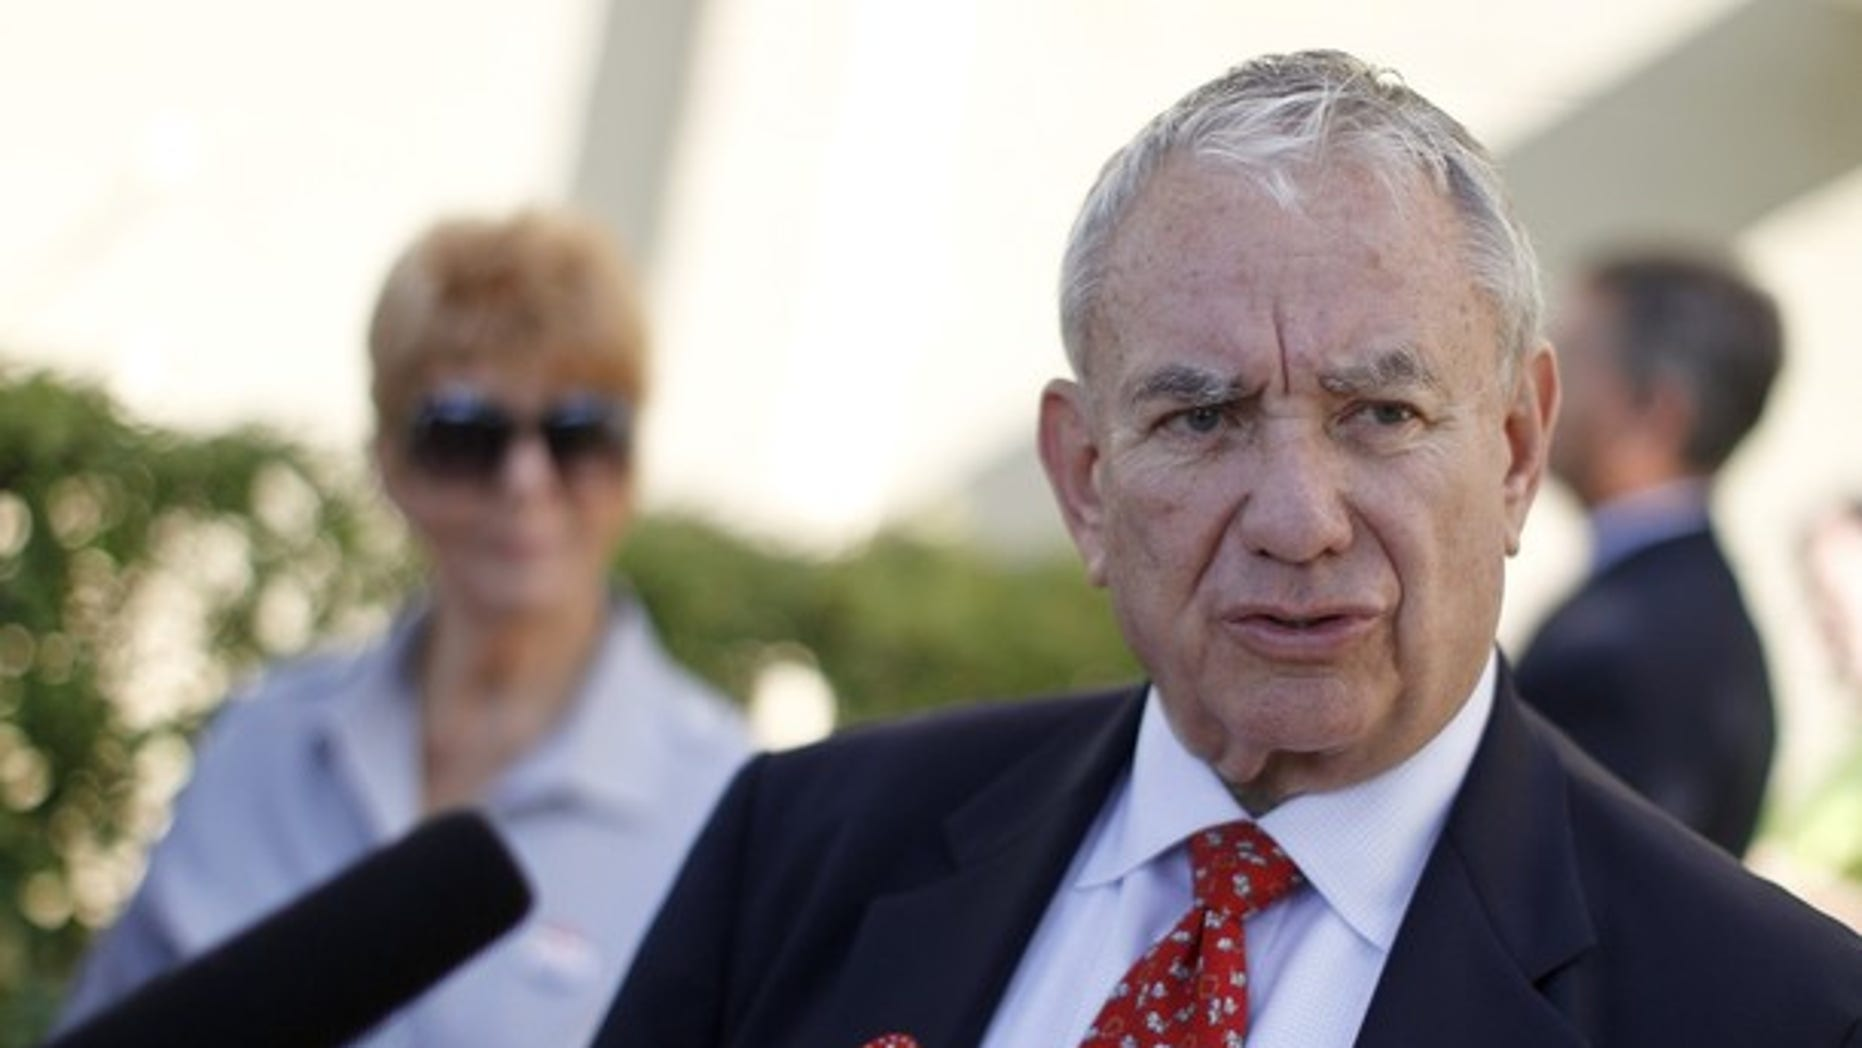 Aug. 14, 2012: Former Wisconsin Gov. Tommy Thompson talks to the media after voting in a primary election.